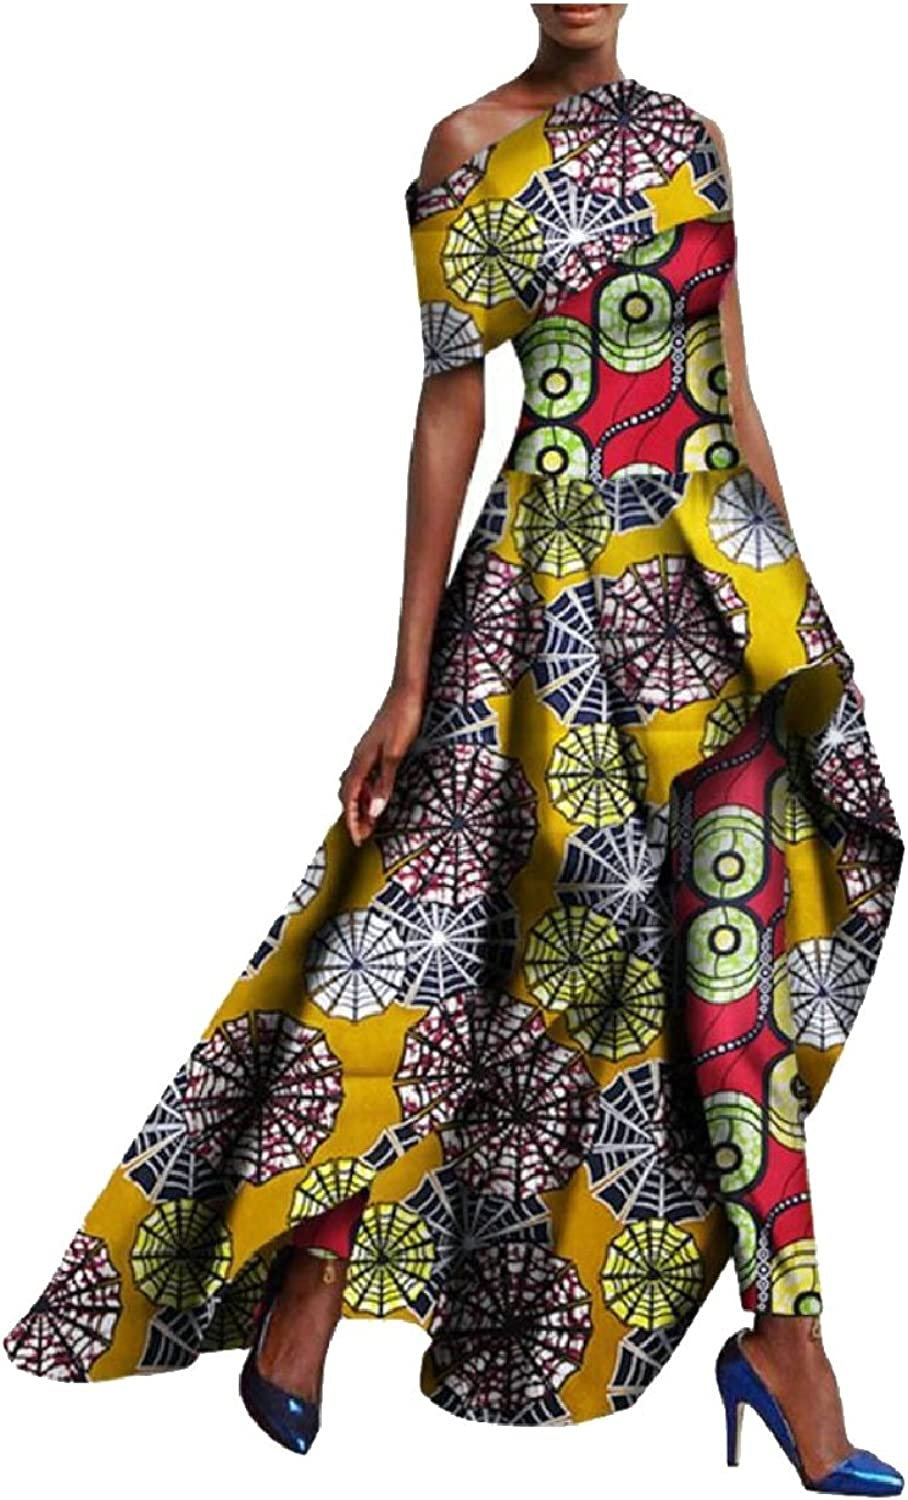 GAGA Women's African Ethnic Outfit Short Sleeve Long Top and Leggings Pant Set